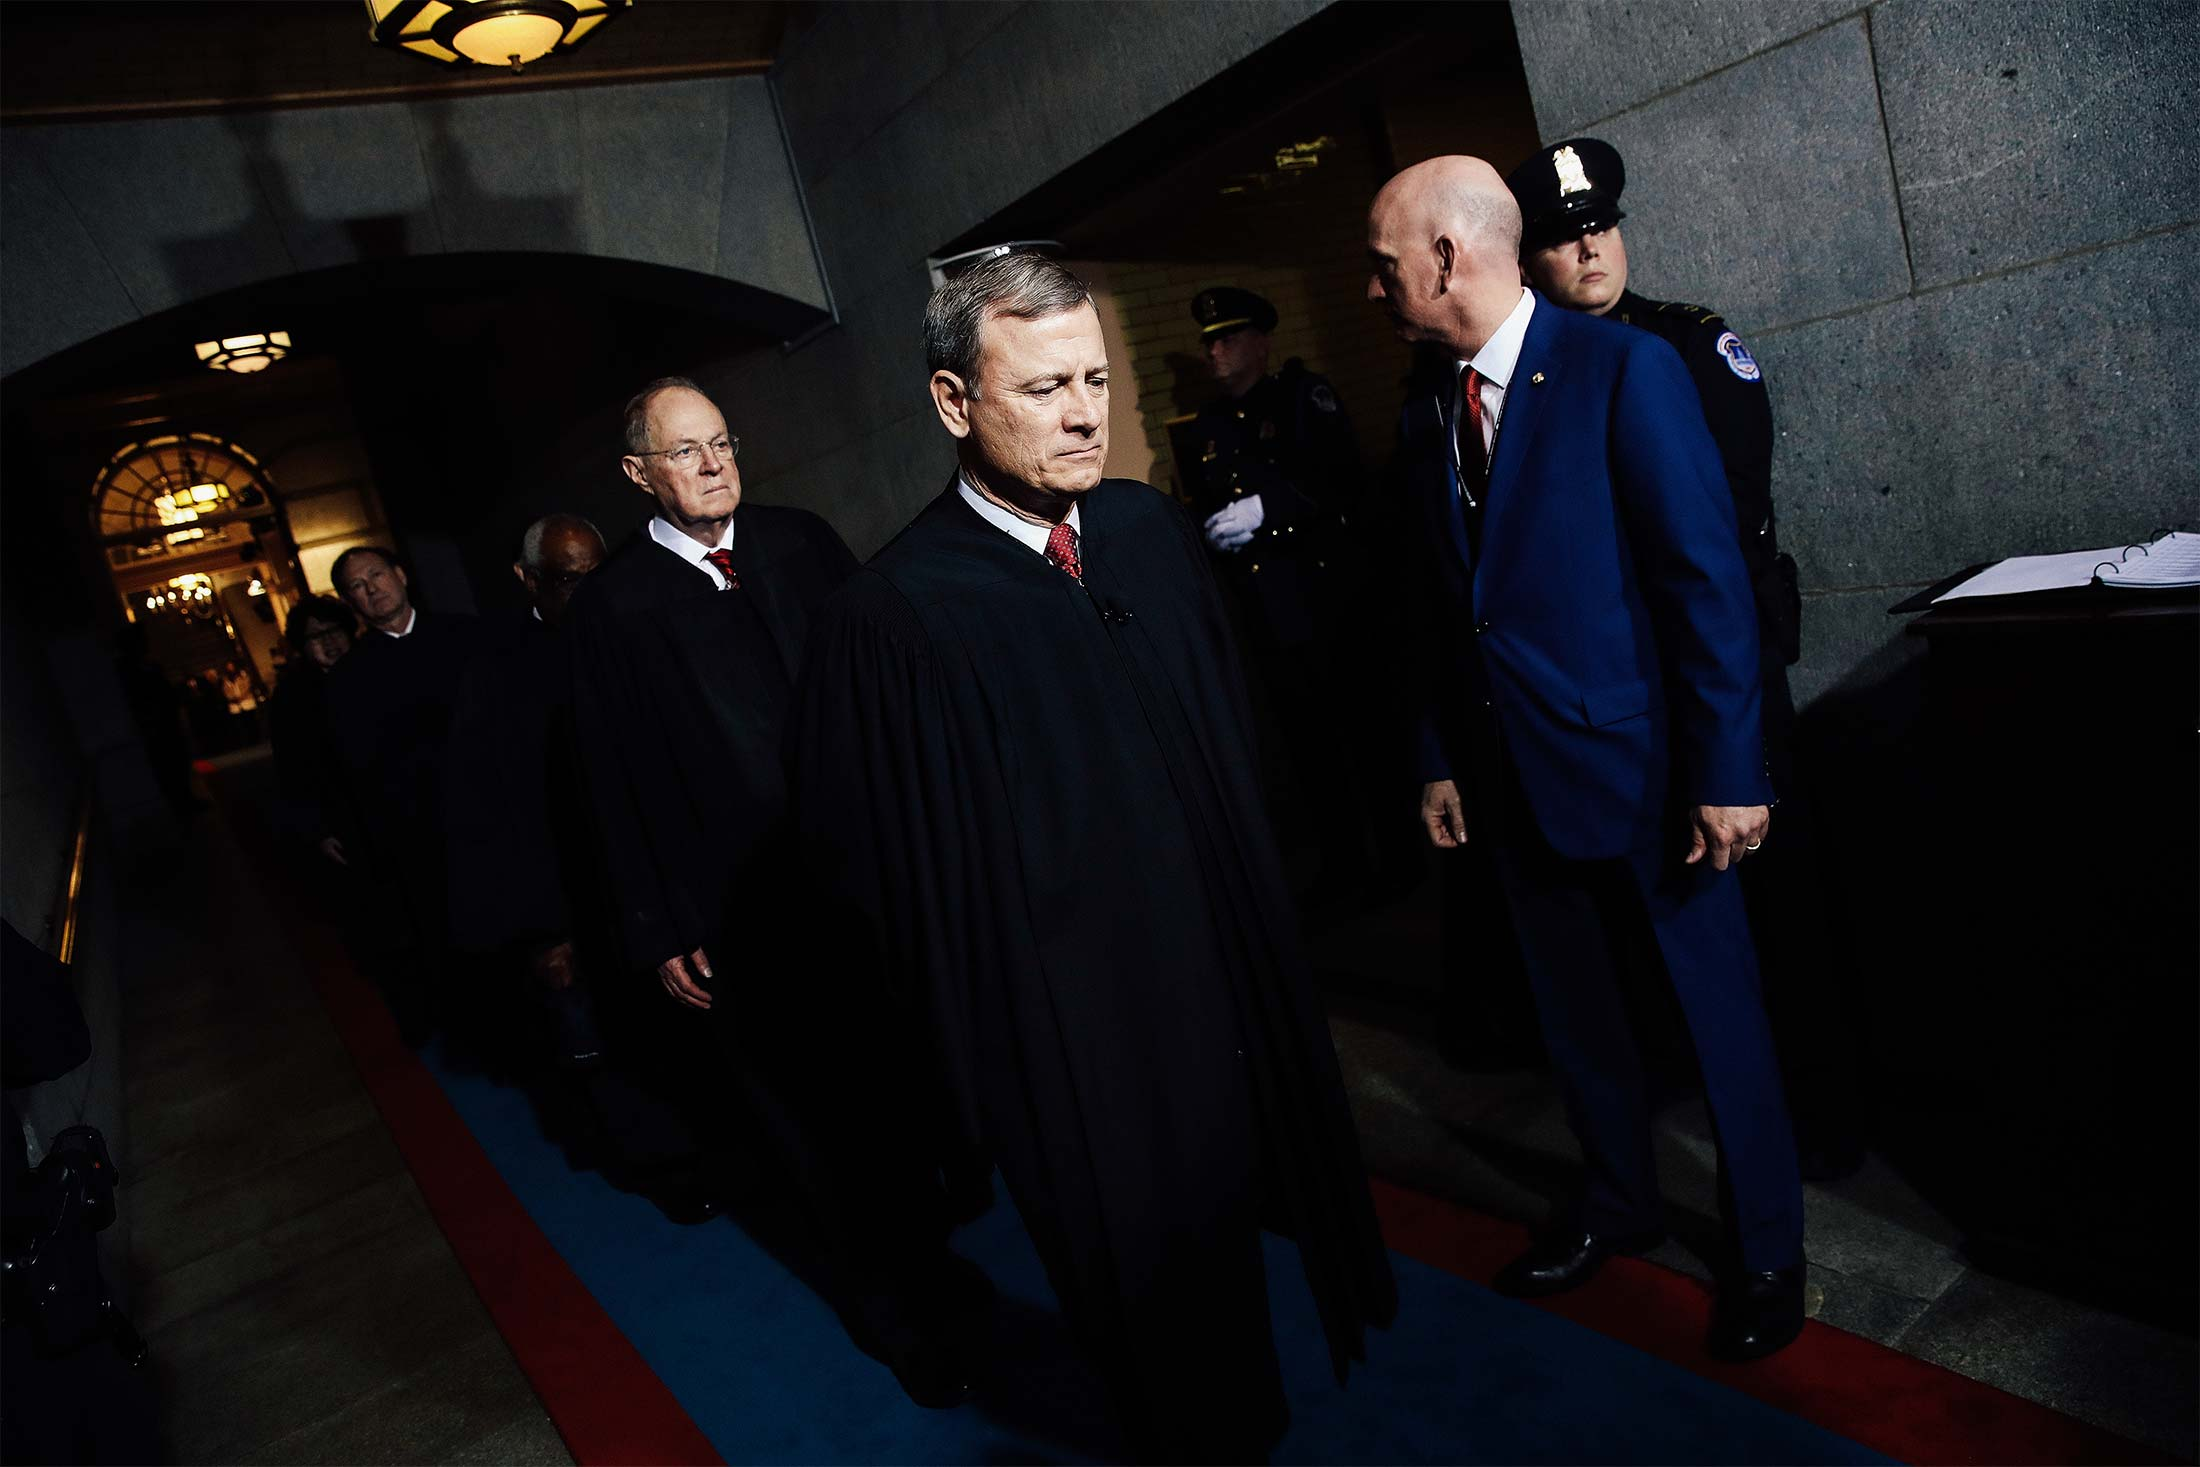 Supreme Court Chief Justice John Roberts and Justice Anthony Kennedy arrive at the U.S. Capitol on Jan. 20, 2017, in Washington, for the inauguration of Donald Trump.